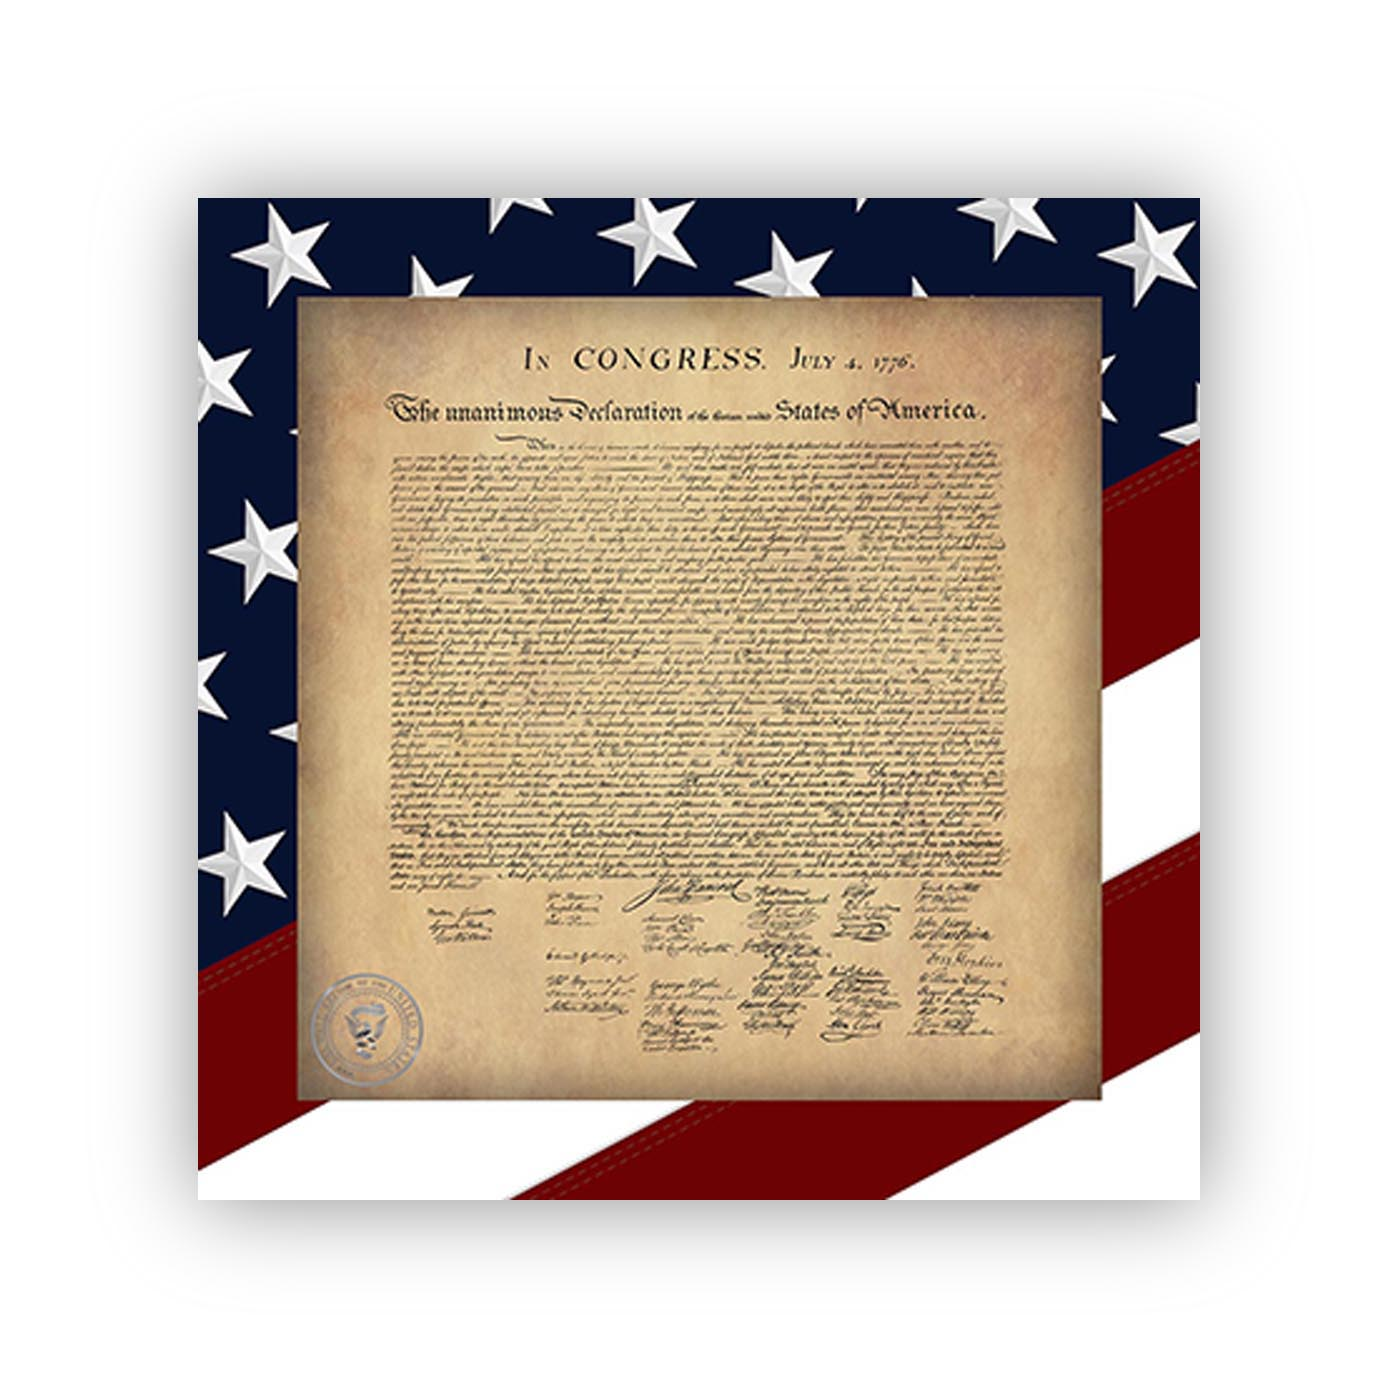 Declaration fo Independence with a Red White and Blue Stars and Stripes border  - Wall Decall / Adhesive Posters